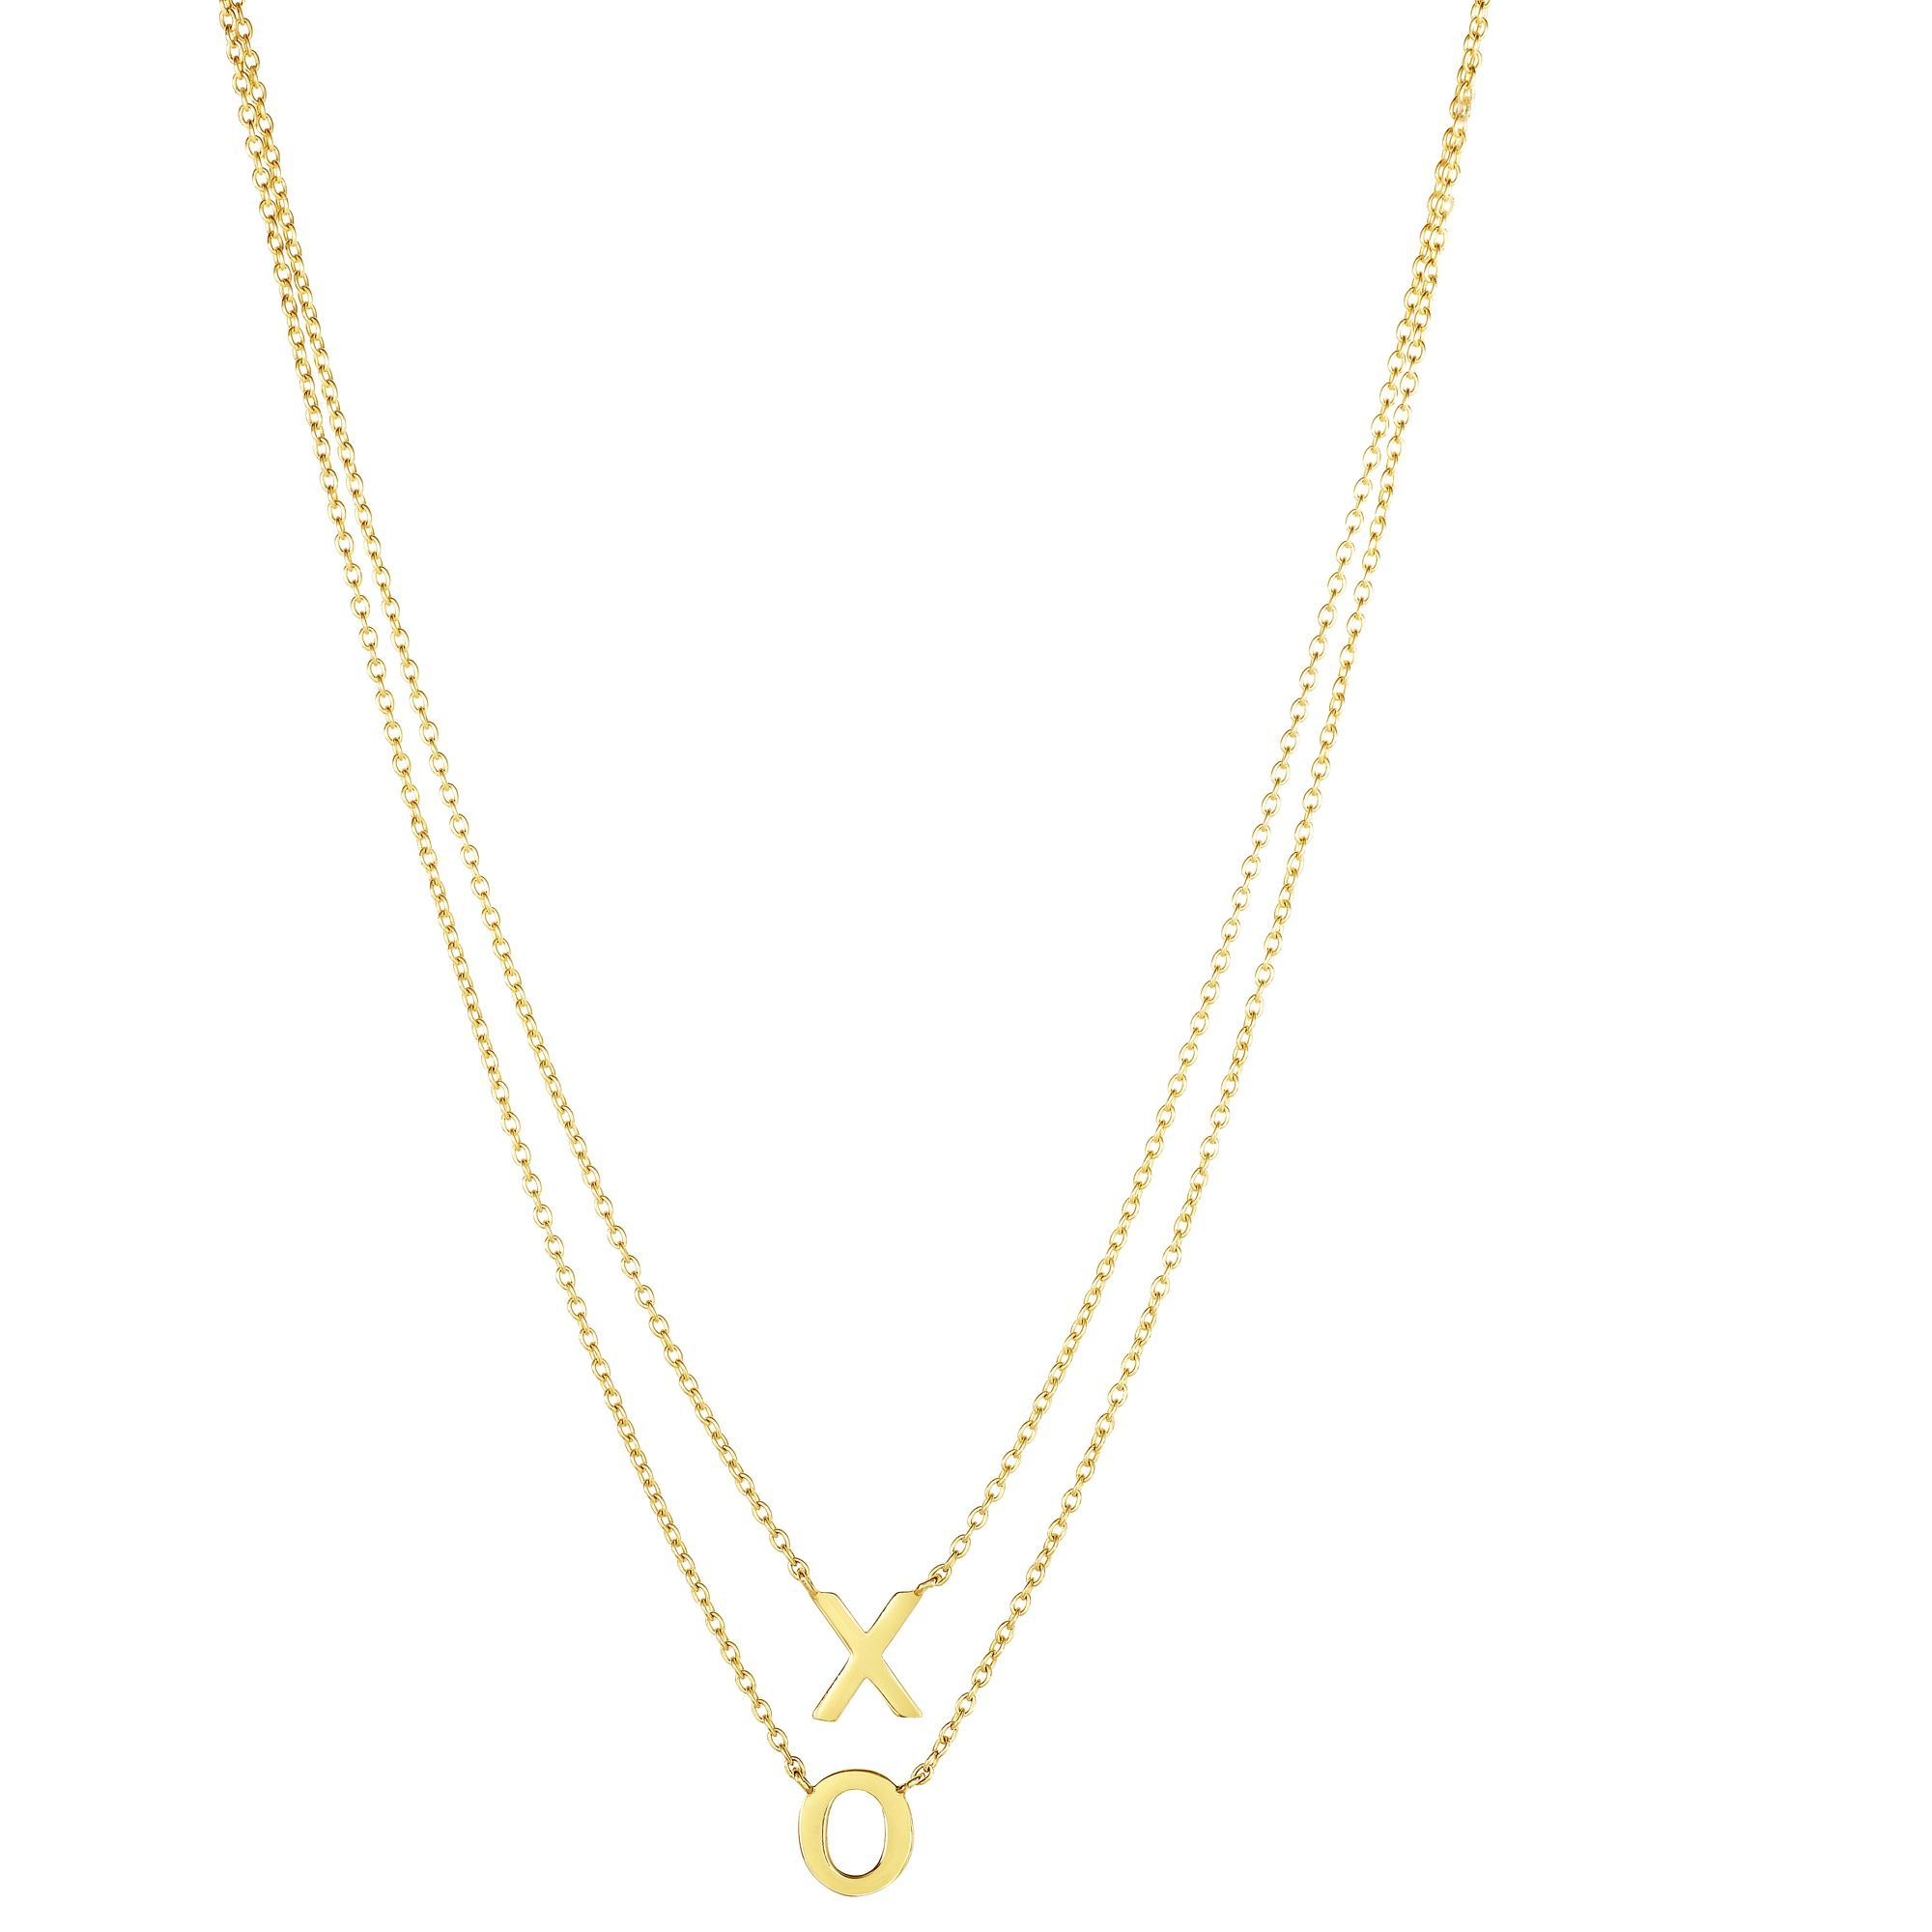 14 Karat Yellow Gold Layered XO Hugs and Kisses Necklace